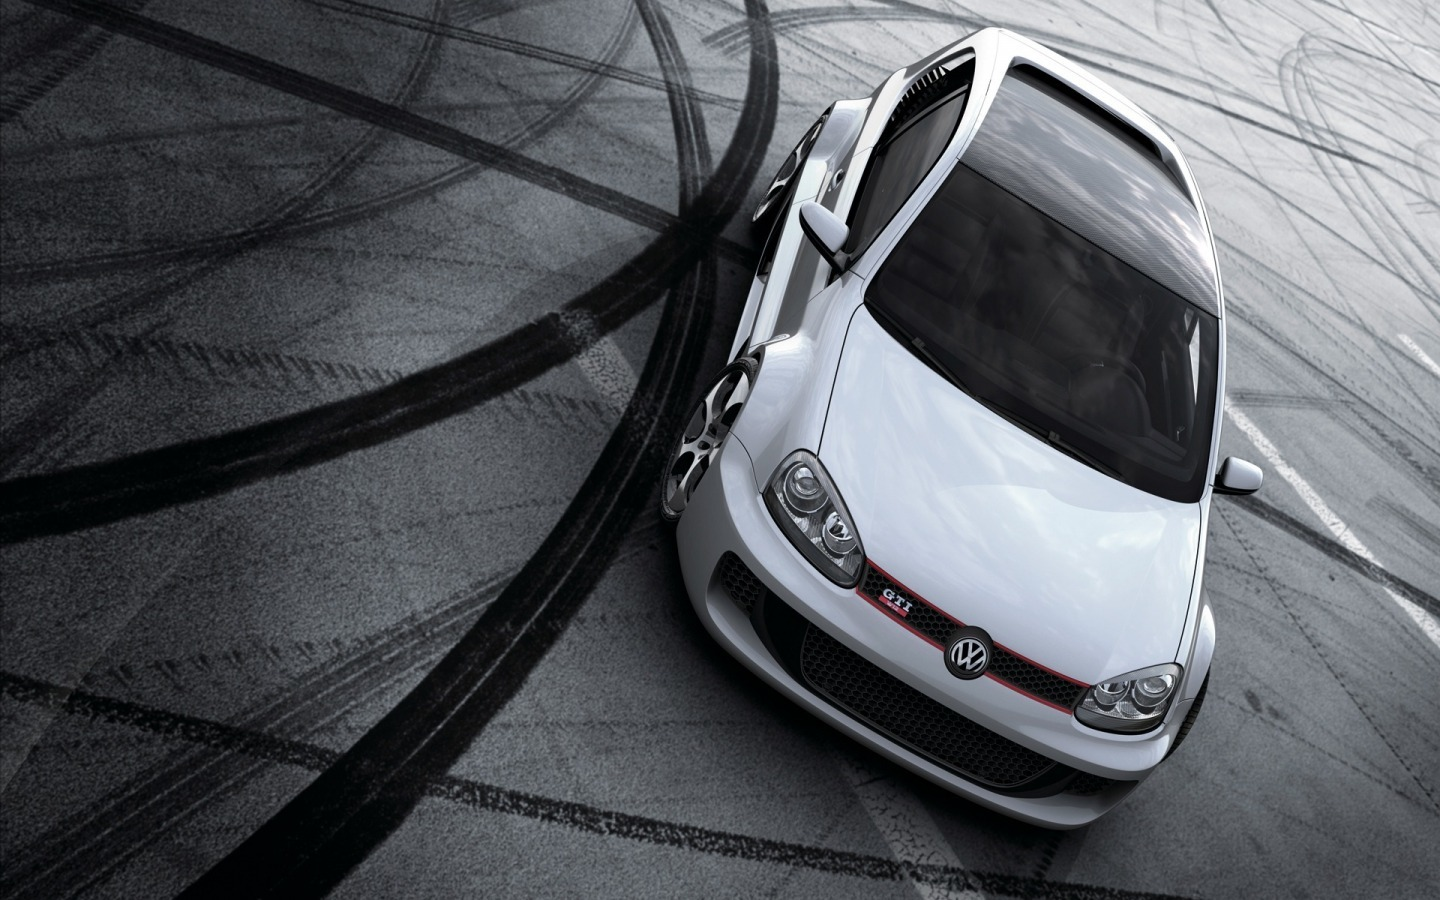 cars Volkswagen Volkswagen Golf HD Wallpaper